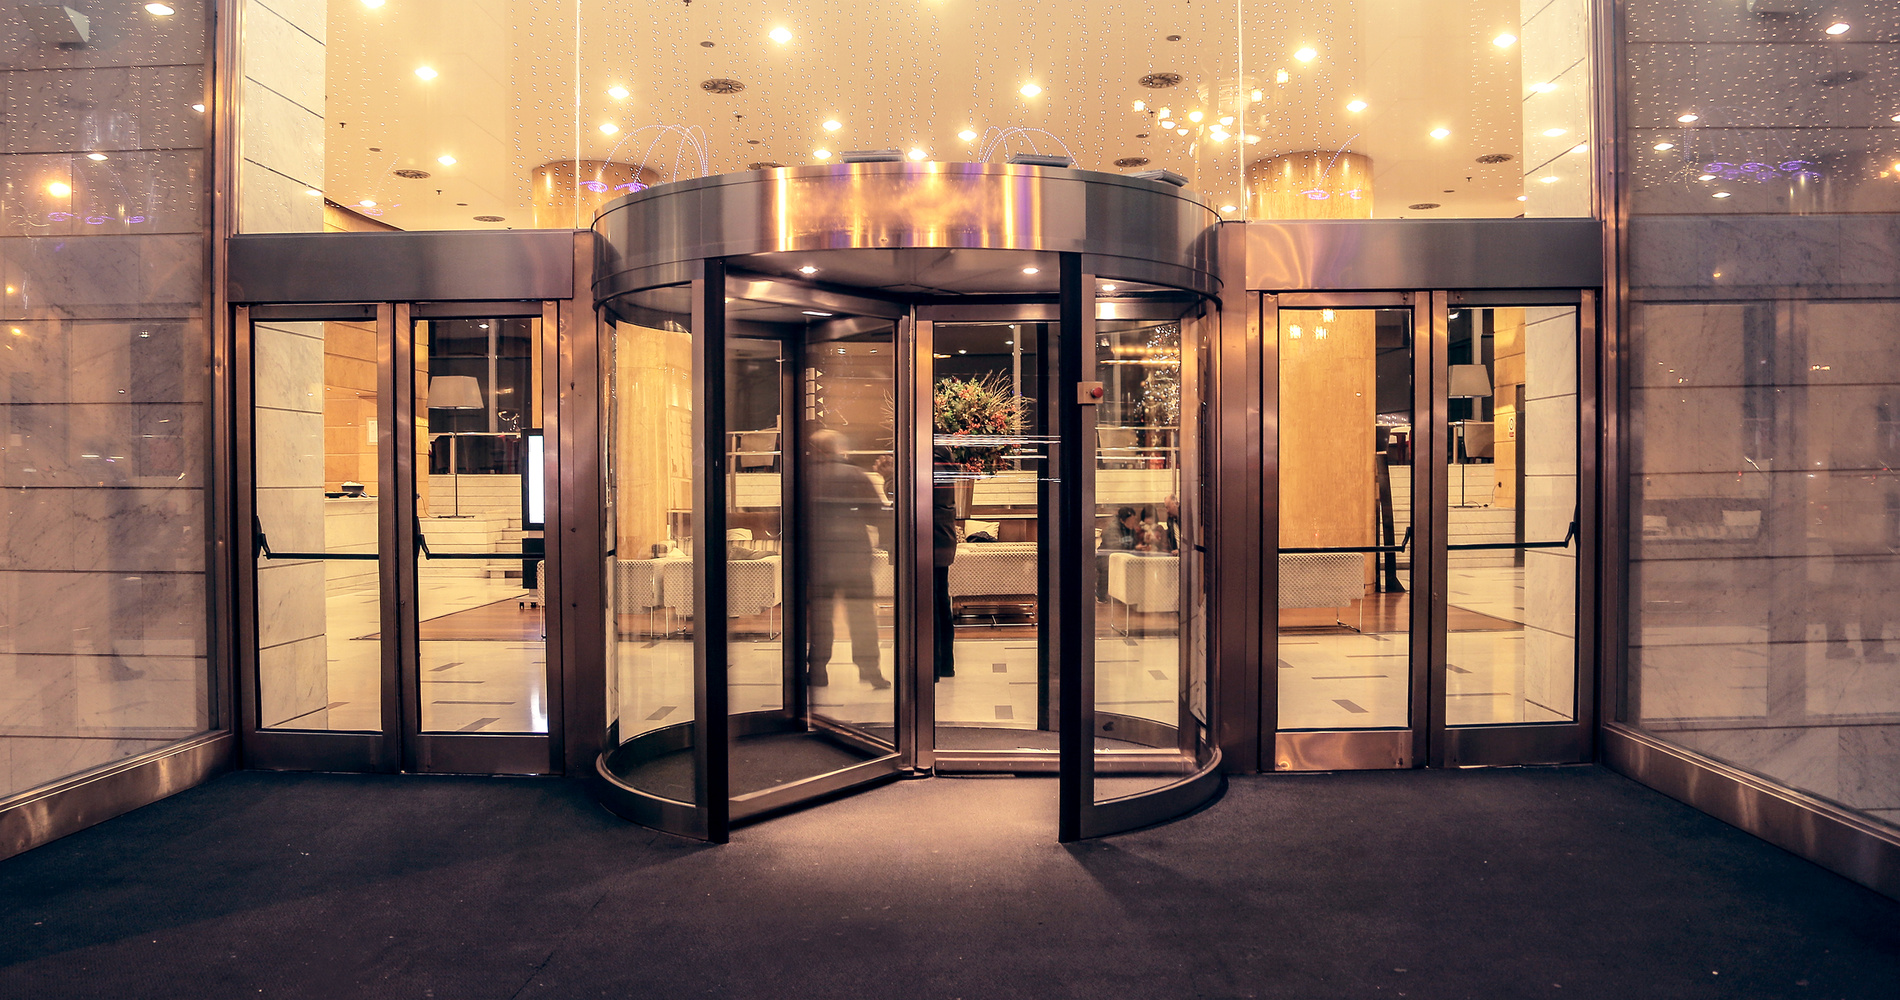 Why You Should Invest in a Hotel Audit